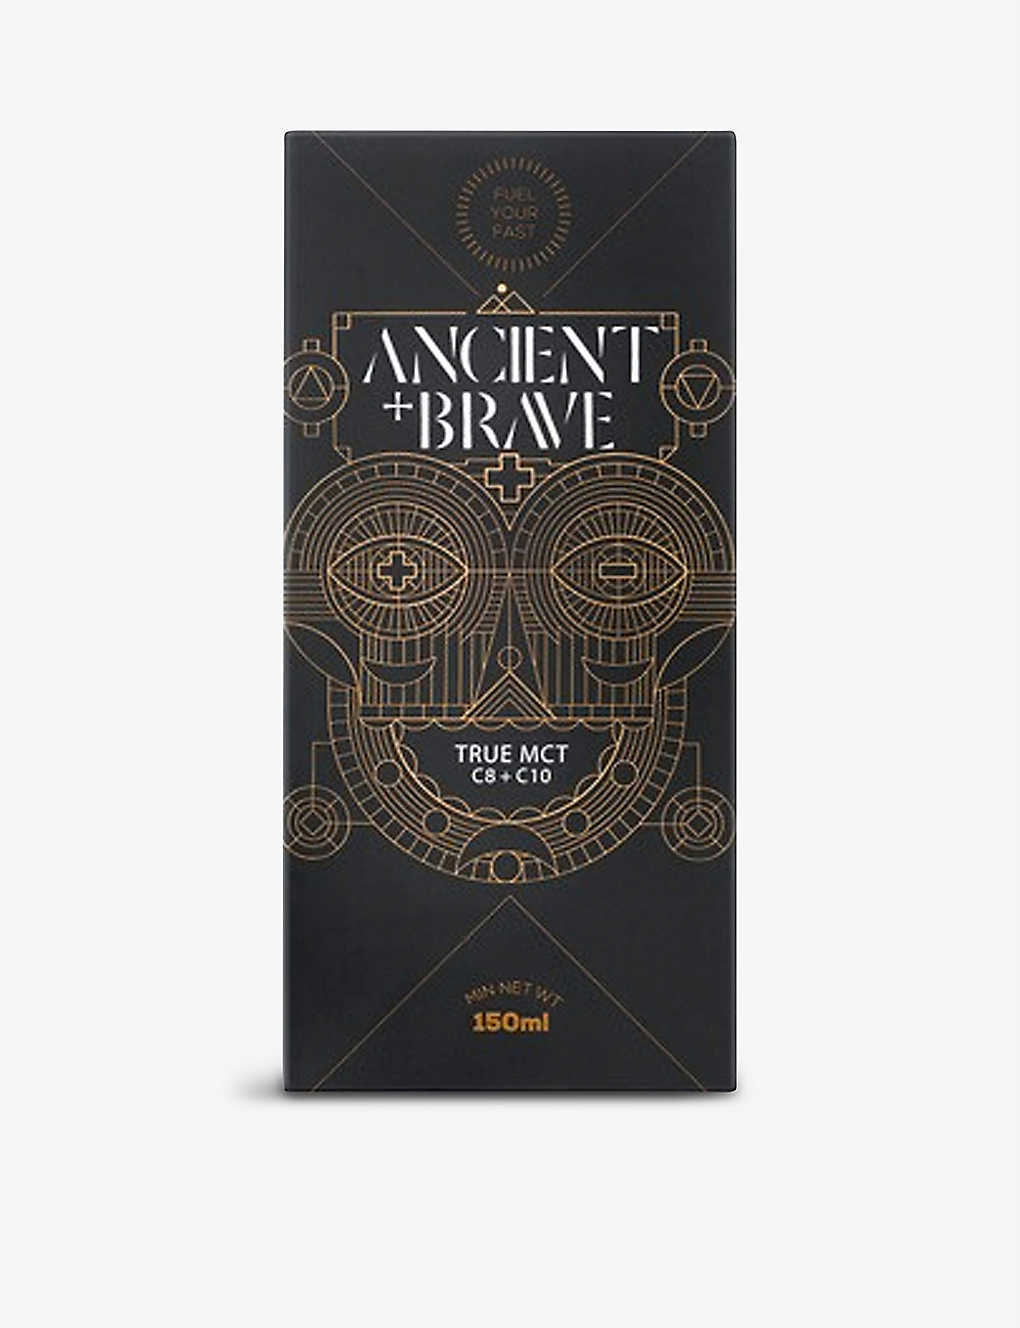 ANCIENT + BRAVE: True MCT sachets pack of 15 10g